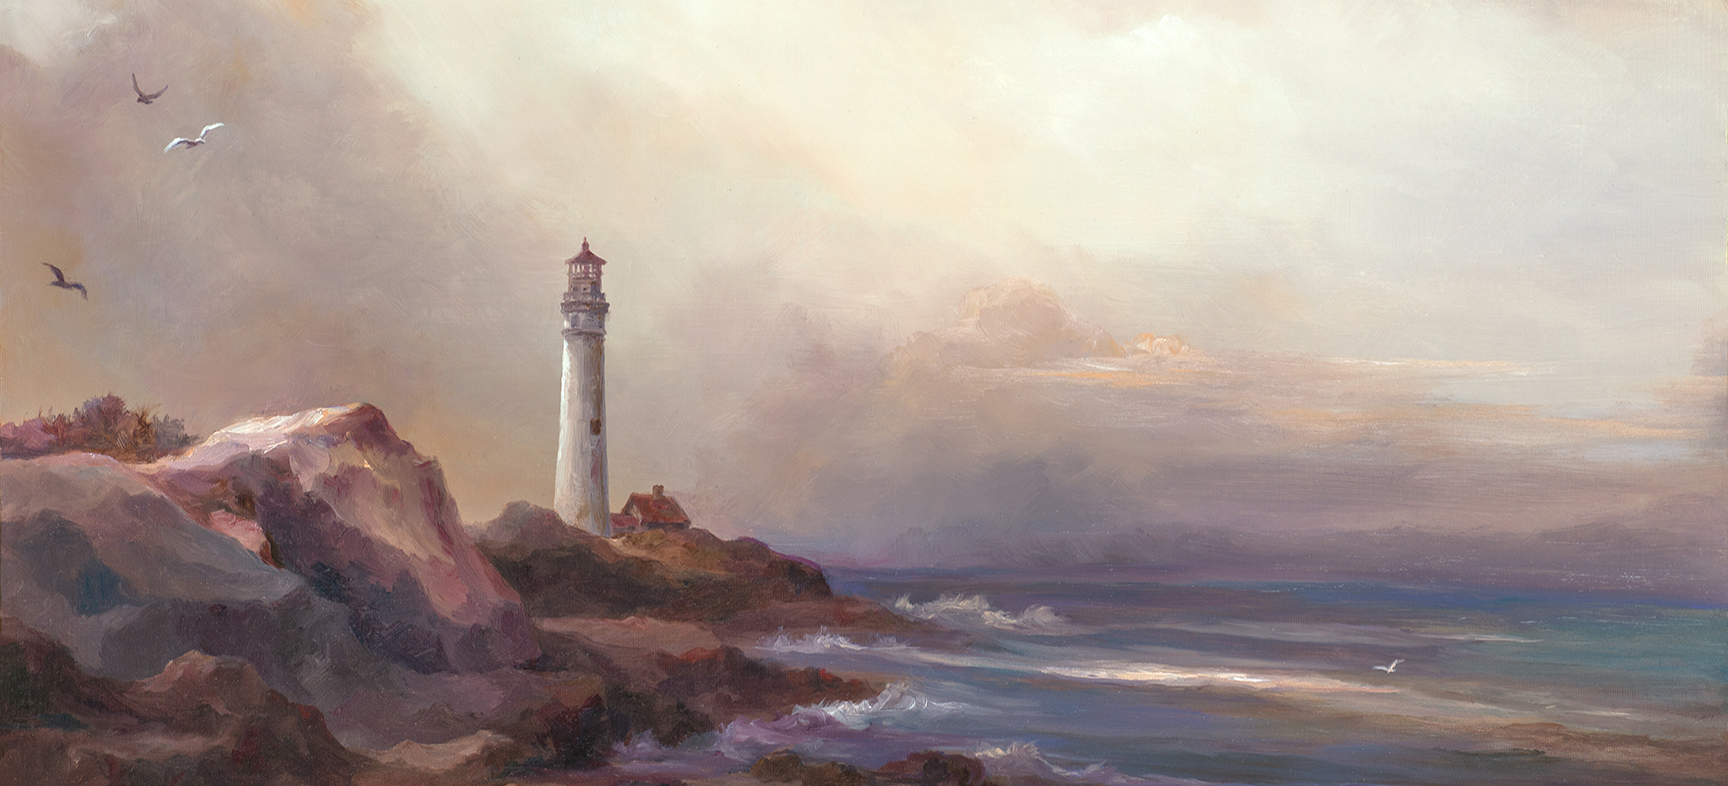 Lighthouse, details